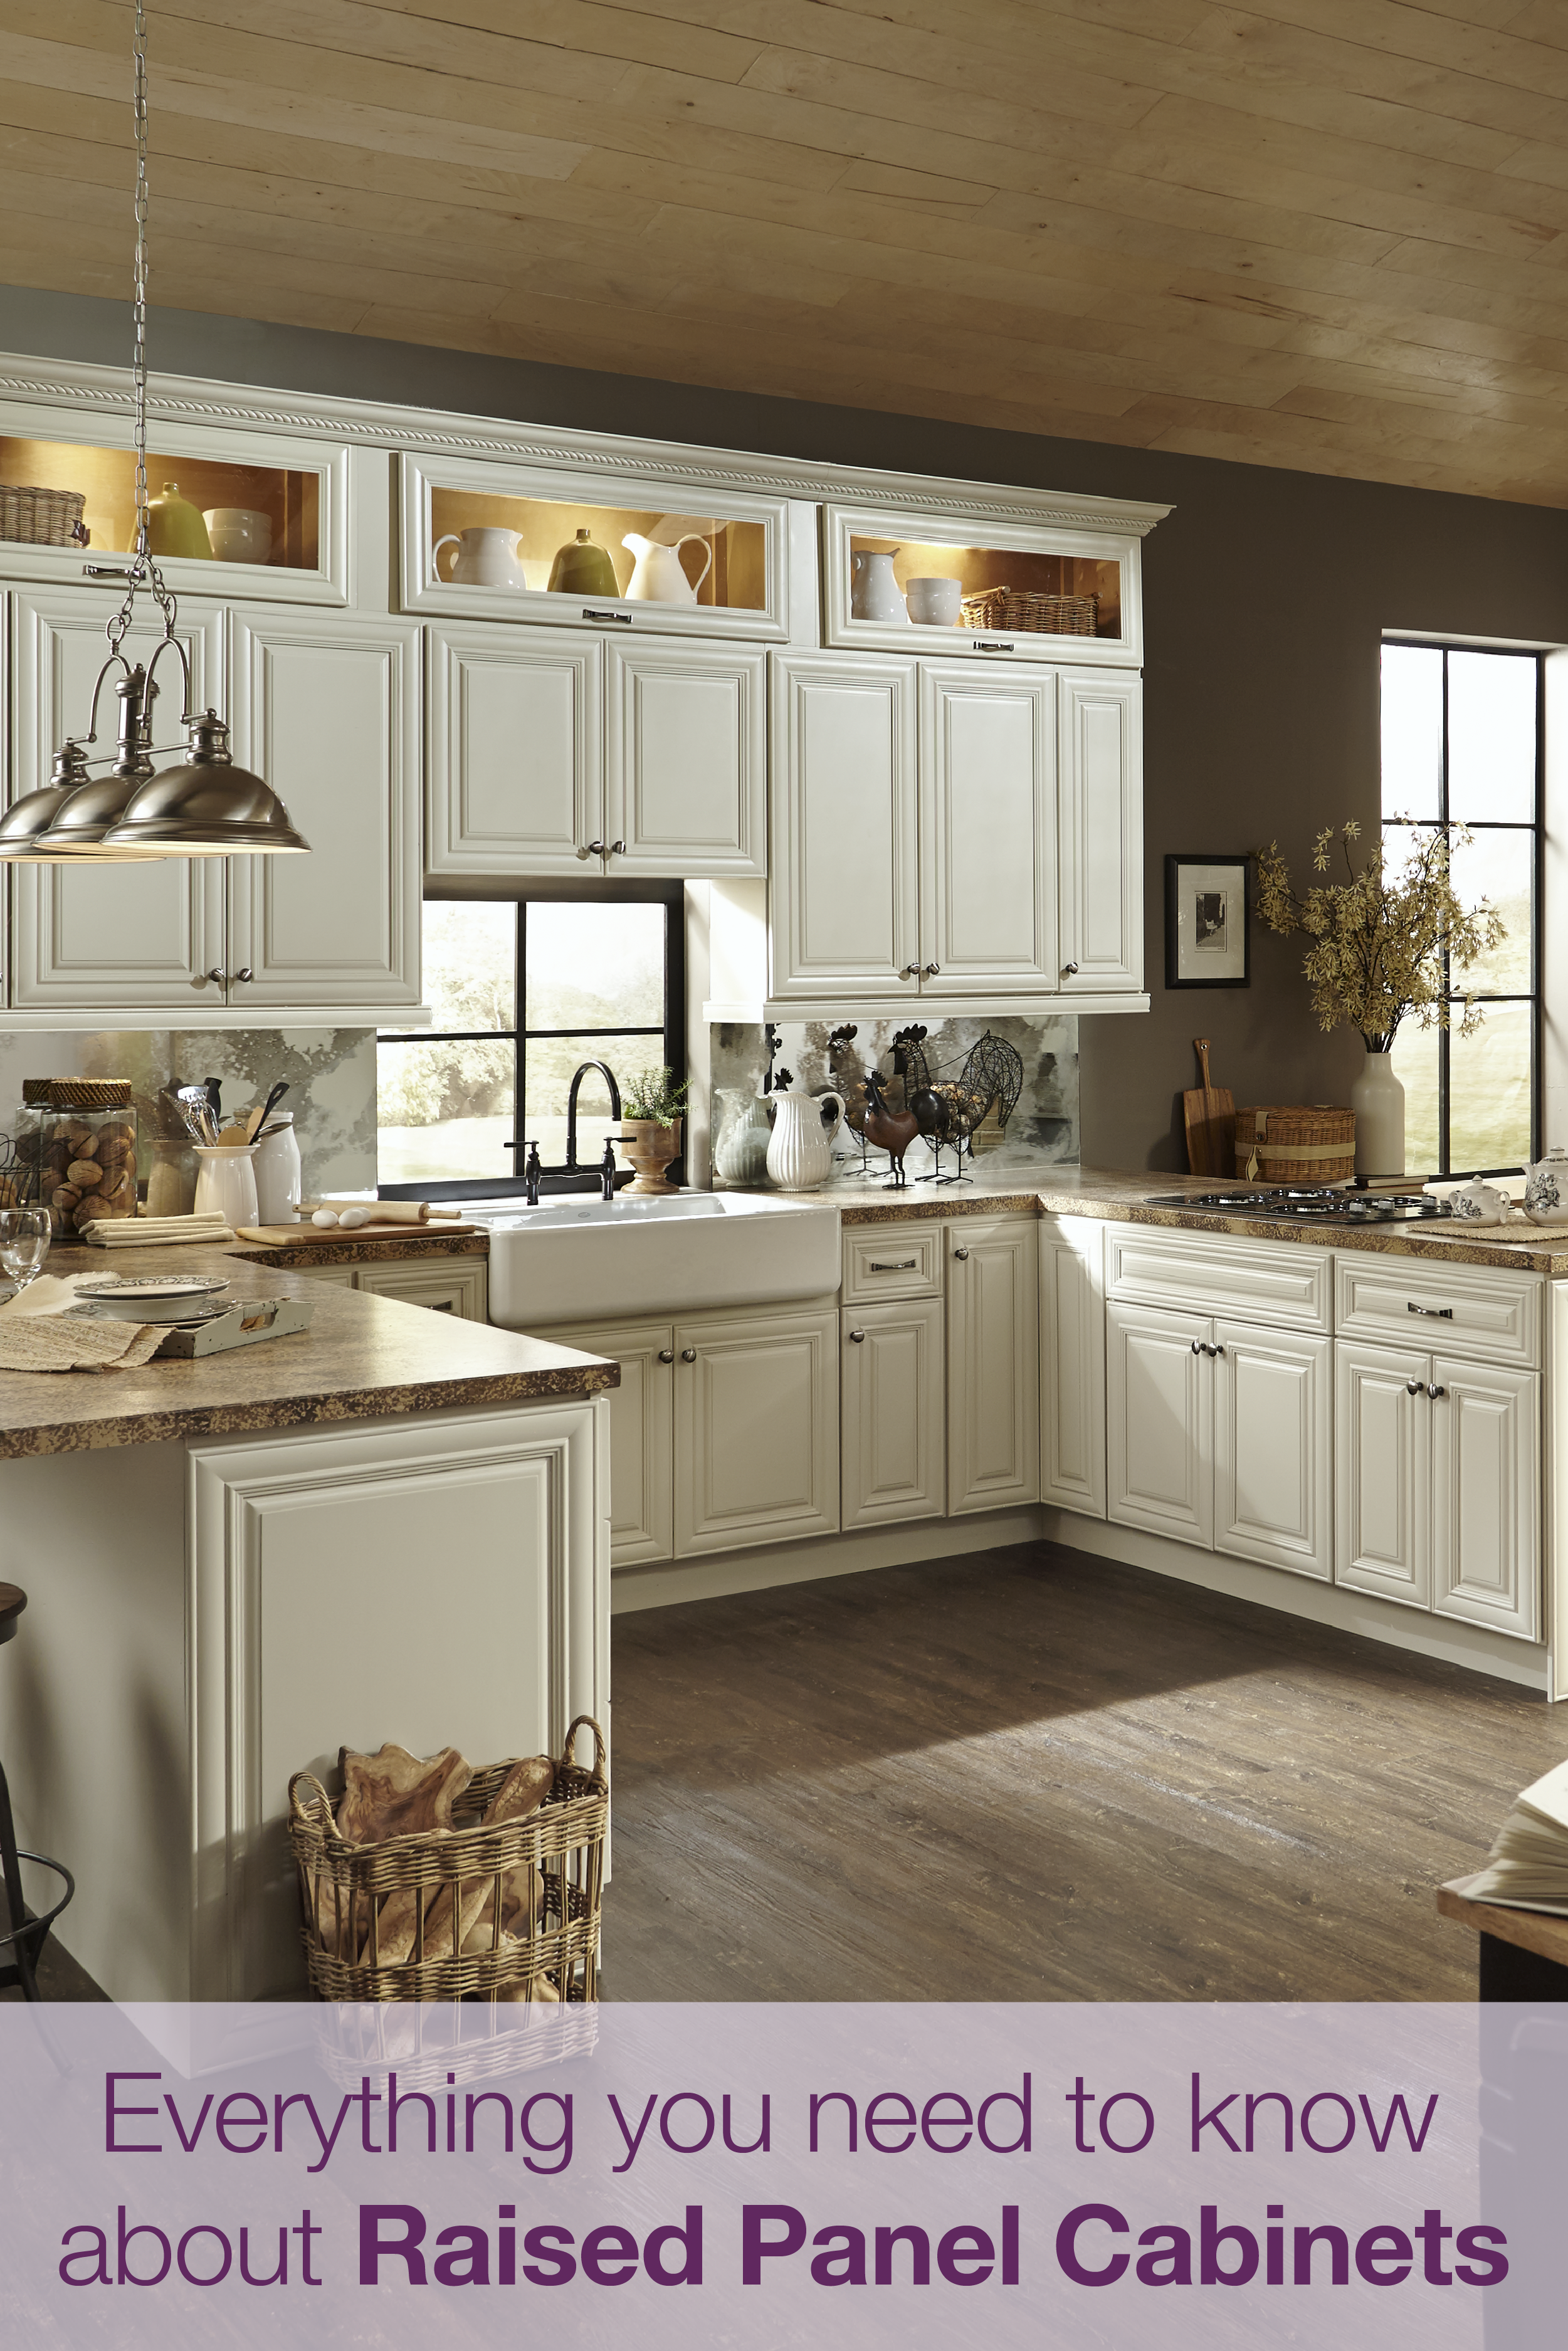 Raised Panel Cabinets Everything You Need To Know Classic And Elegant Raised Panel Cabinets Bri Ivory Kitchen Cabinets Cabinets To Go Raised Panel Cabinets